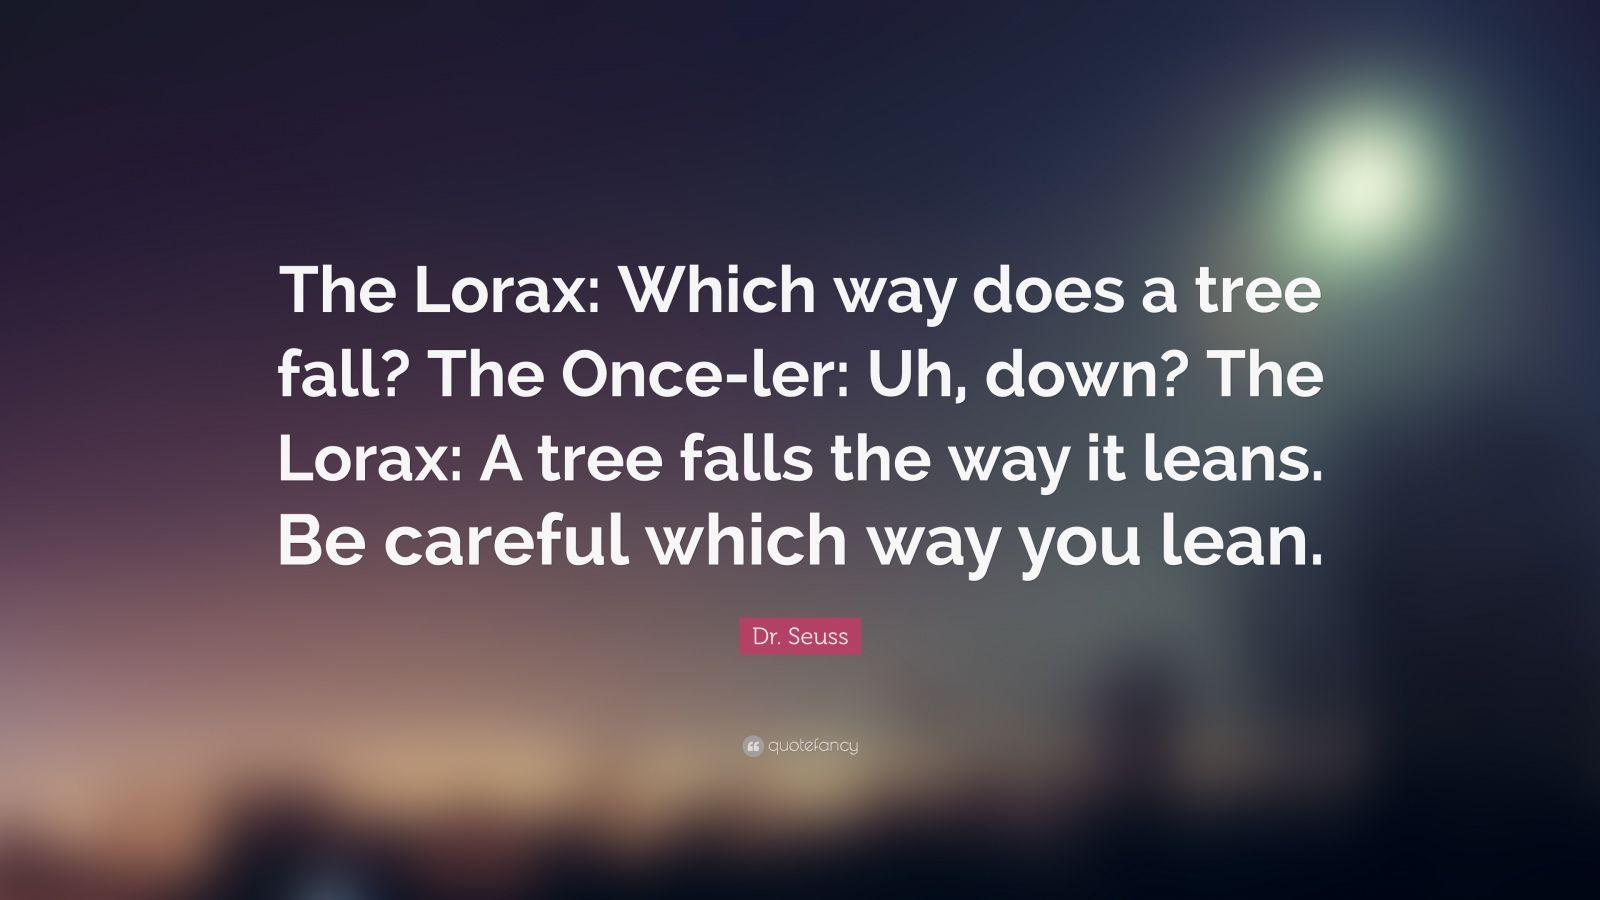 "Dr. Seuss Quote: ""The Lorax: Which way does a tree fall? The Once-ler: Uh, down? The Lorax: A tree falls the way it leans. Be careful which way you lean."""